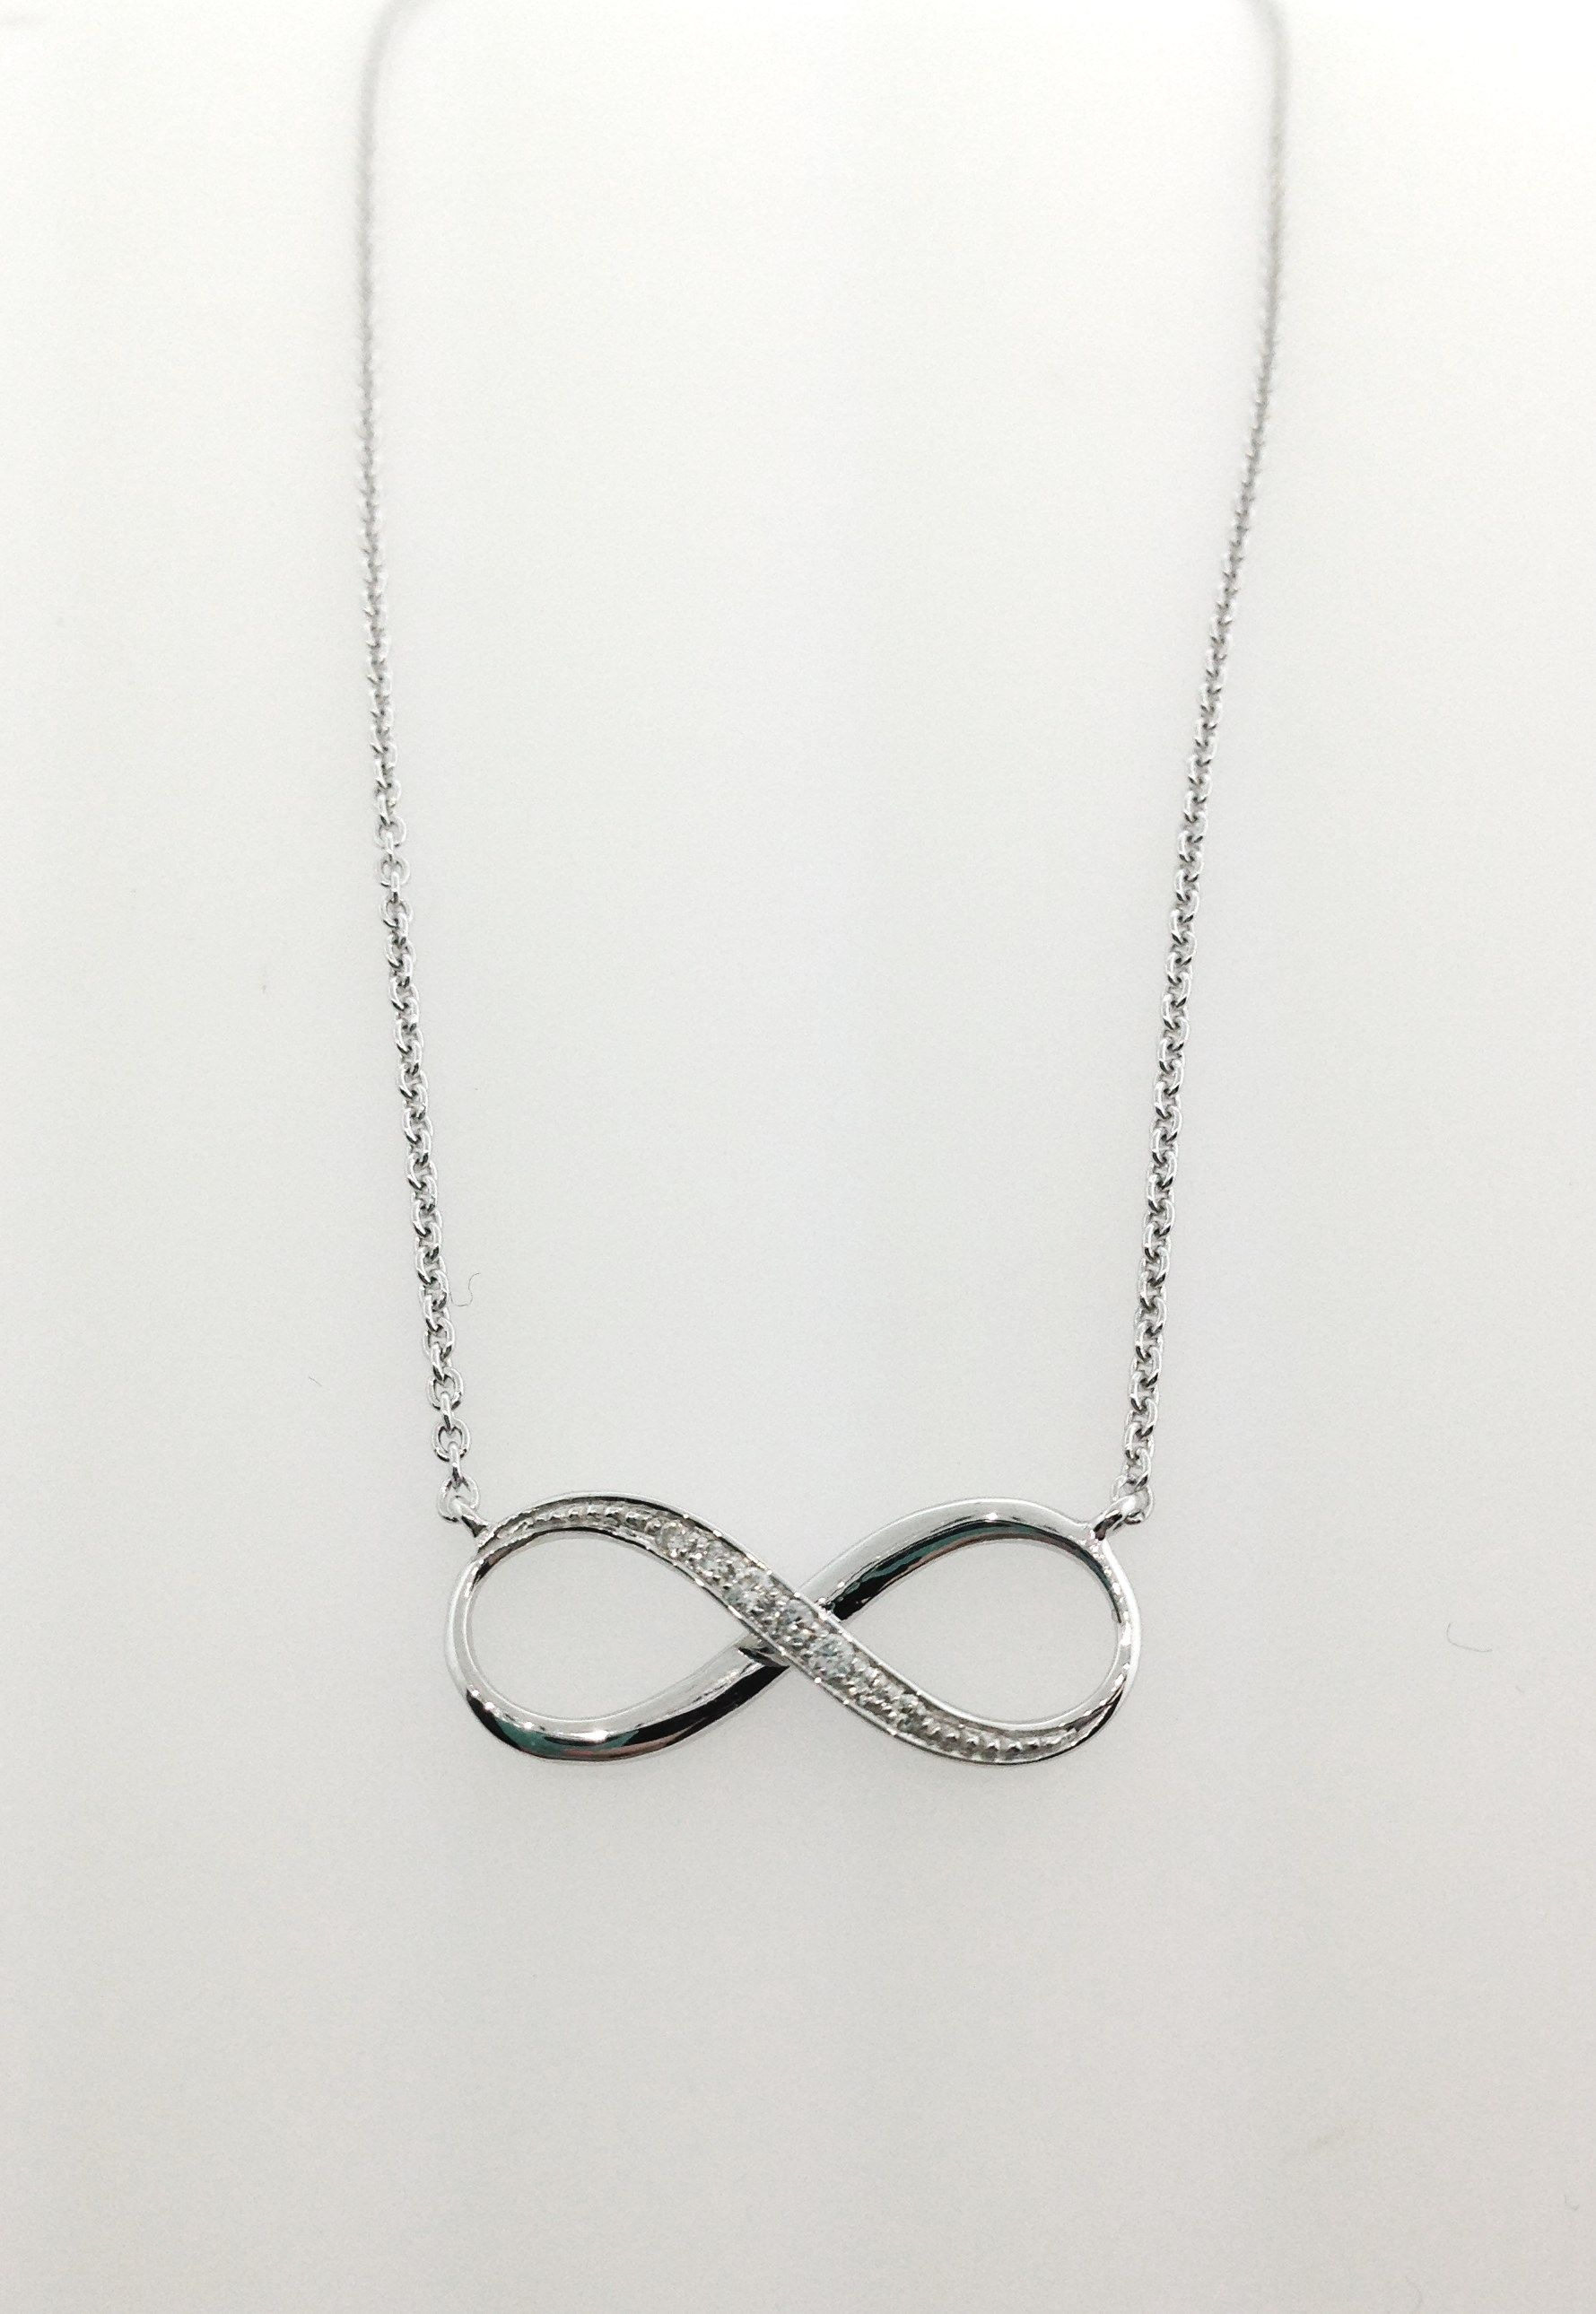 14k White Gold and Diamond Infinity Necklace infinity jewelry